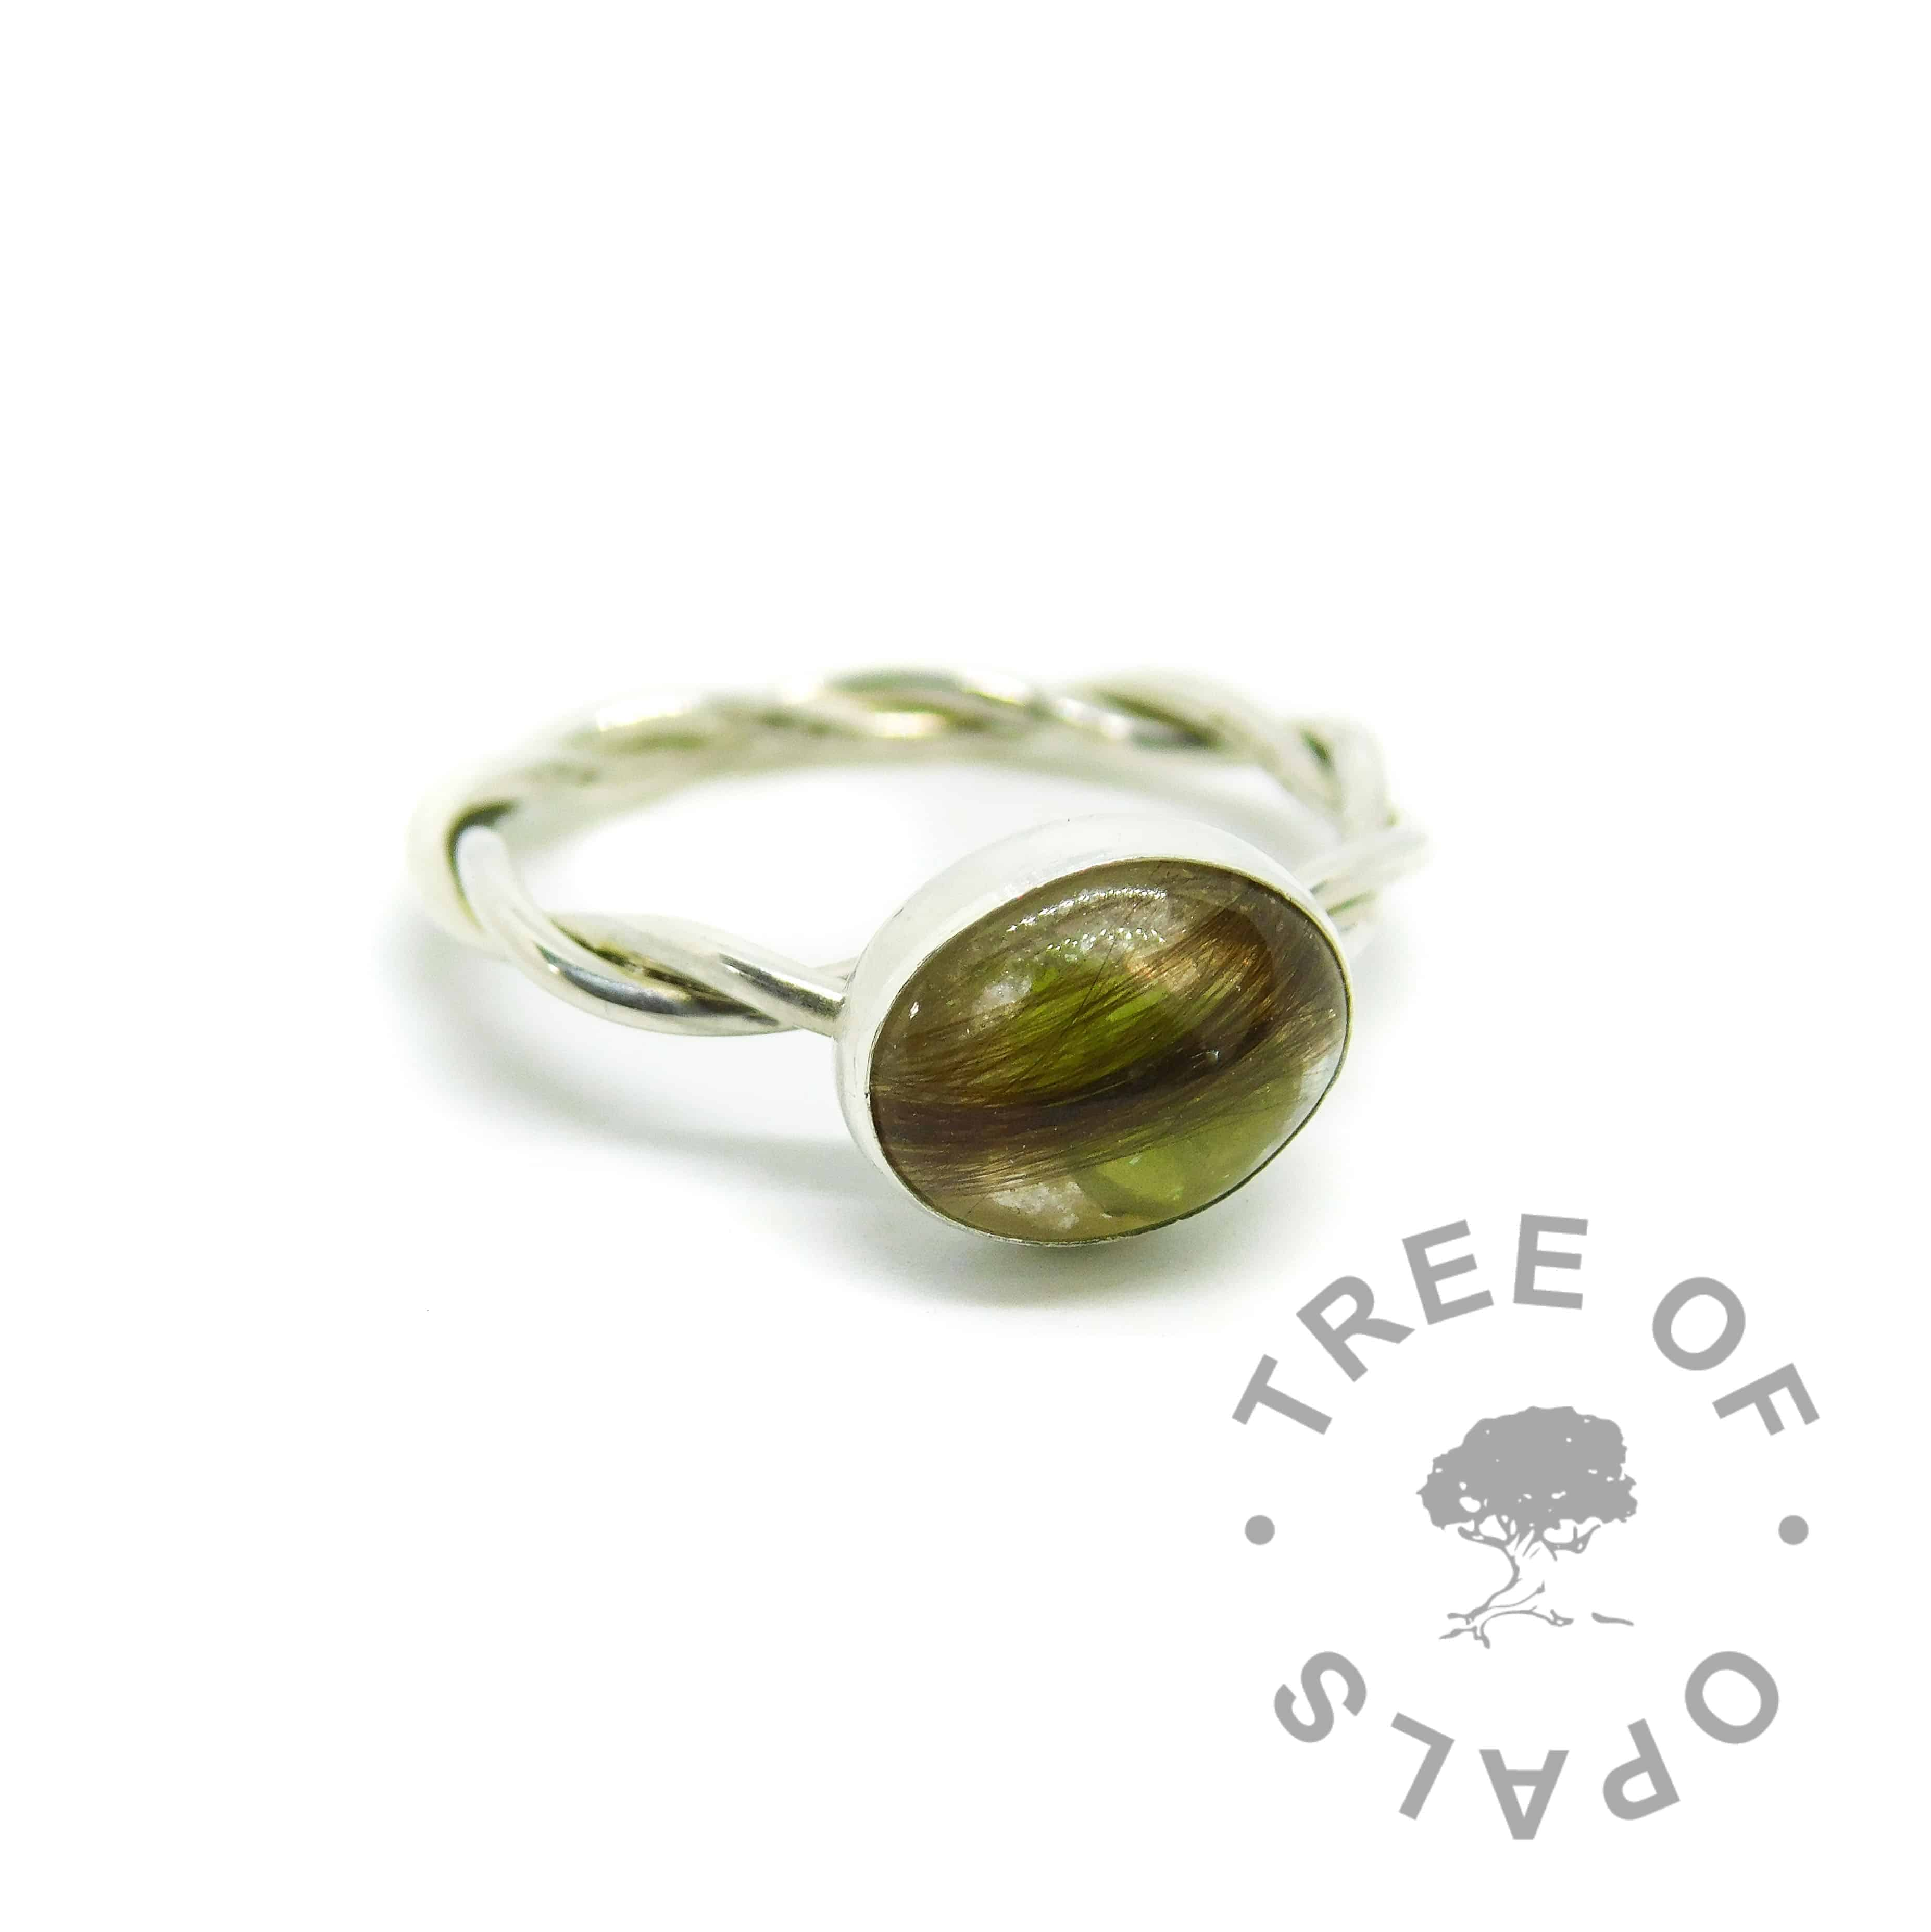 lock of ring with unicorn white resin sparkle mix, large rough natural peridot August birthstone. Handmade twisted band EcoSilver ring shank, 10x8mm bezel cup. Watermarked copyright Tree of Opals memorial jewellery image